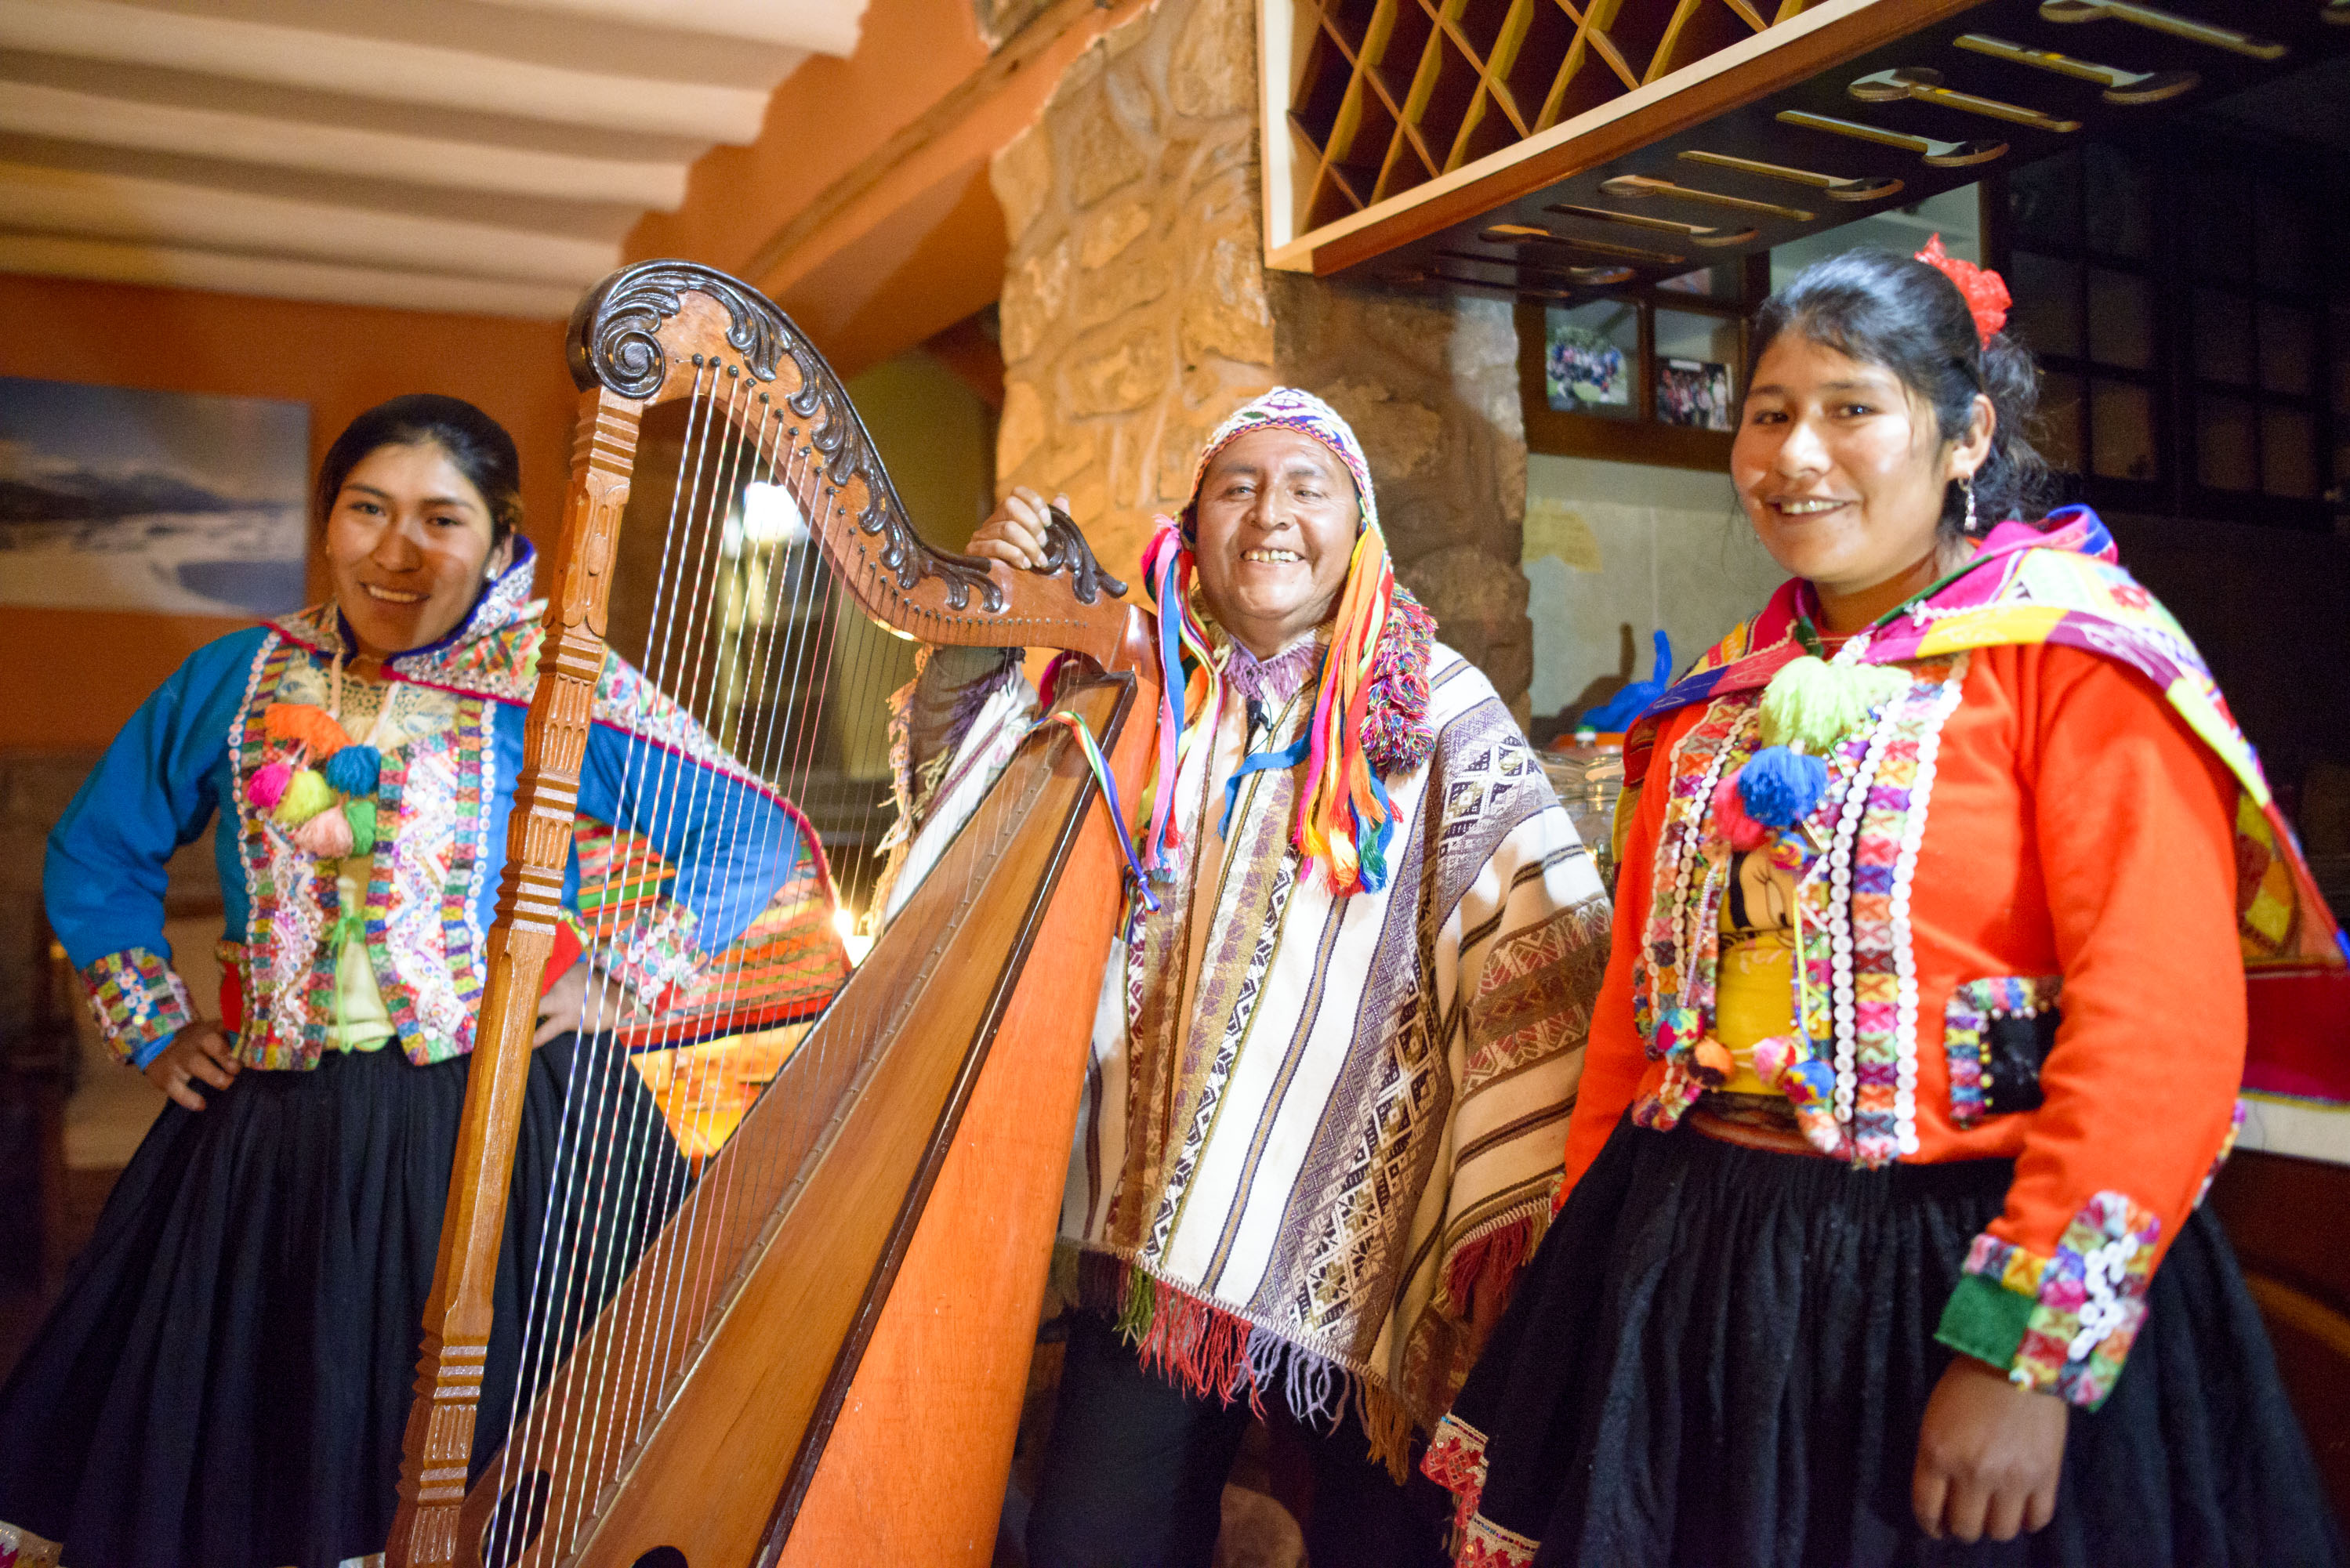 Learn more about Cusco, its traditions and its people